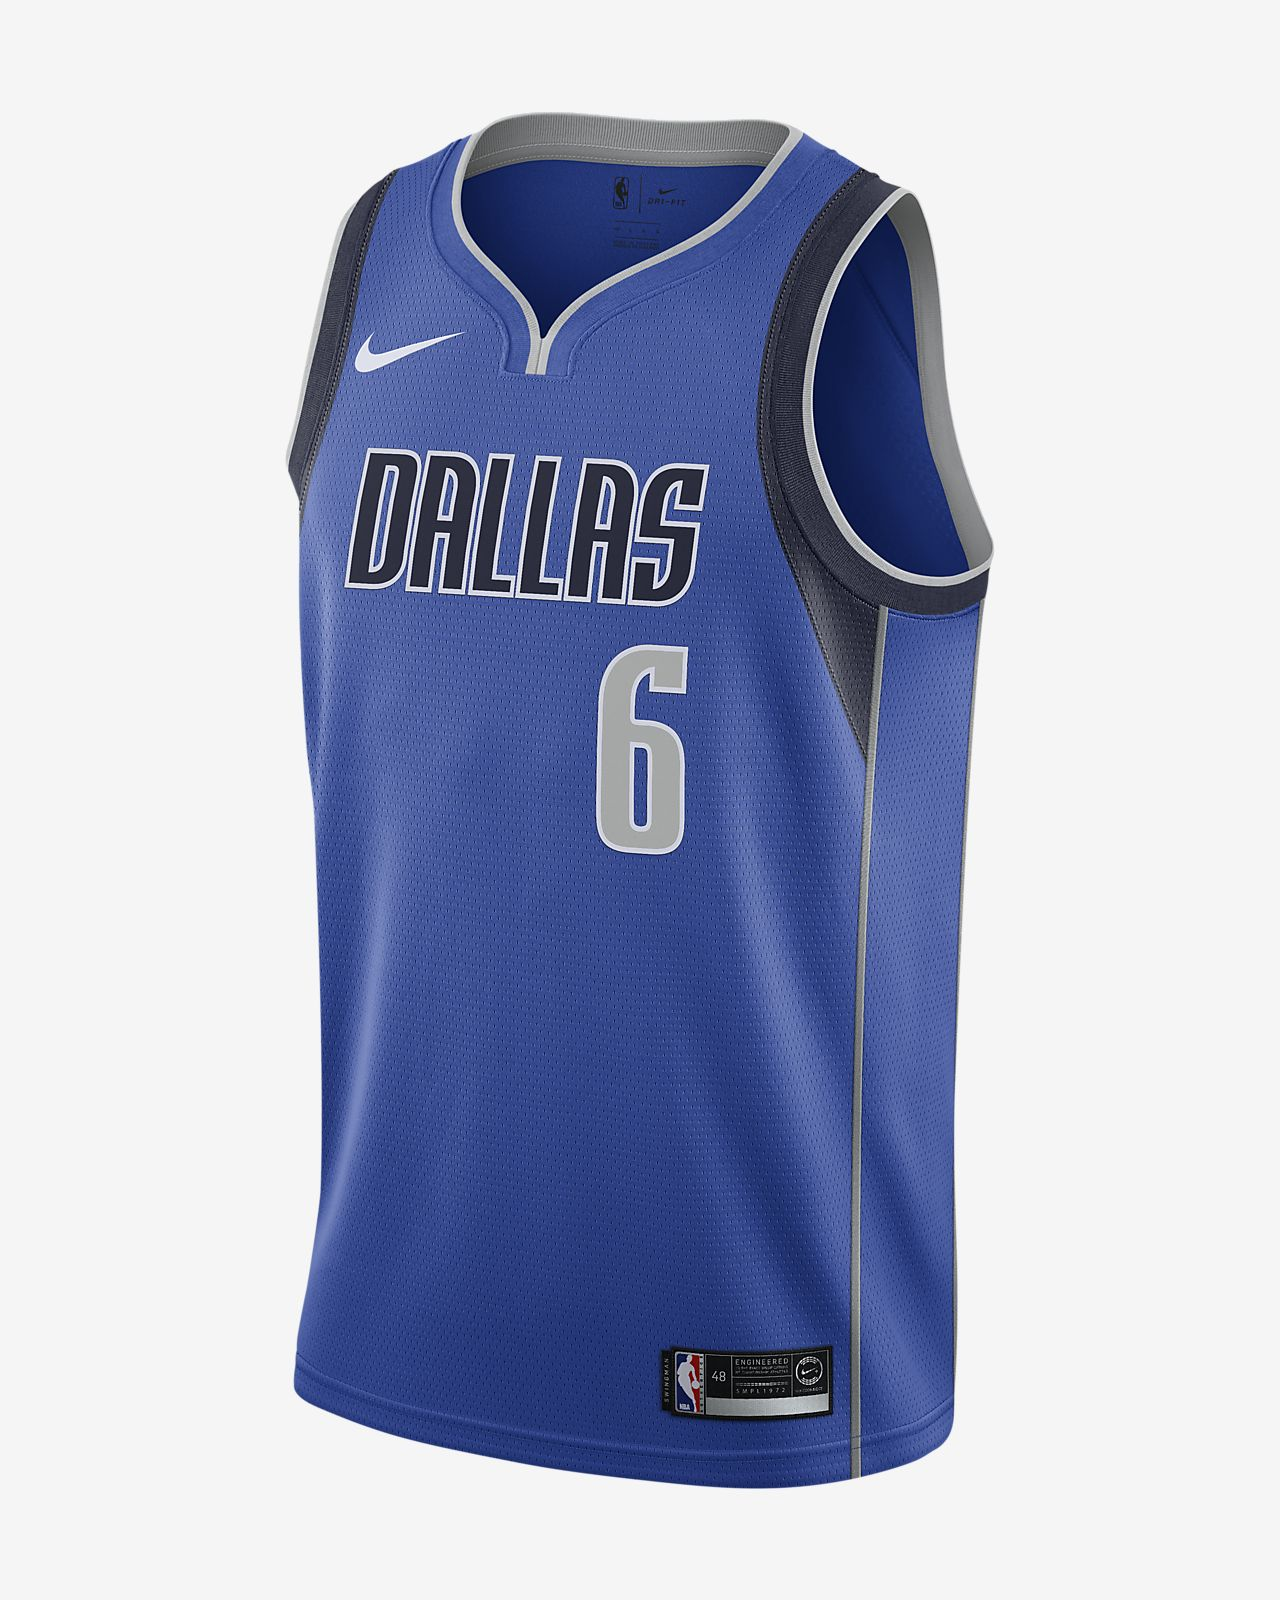 Camiseta Nike NBA Swingman para hombre Kristaps Porzingis Mavericks Icon Edition